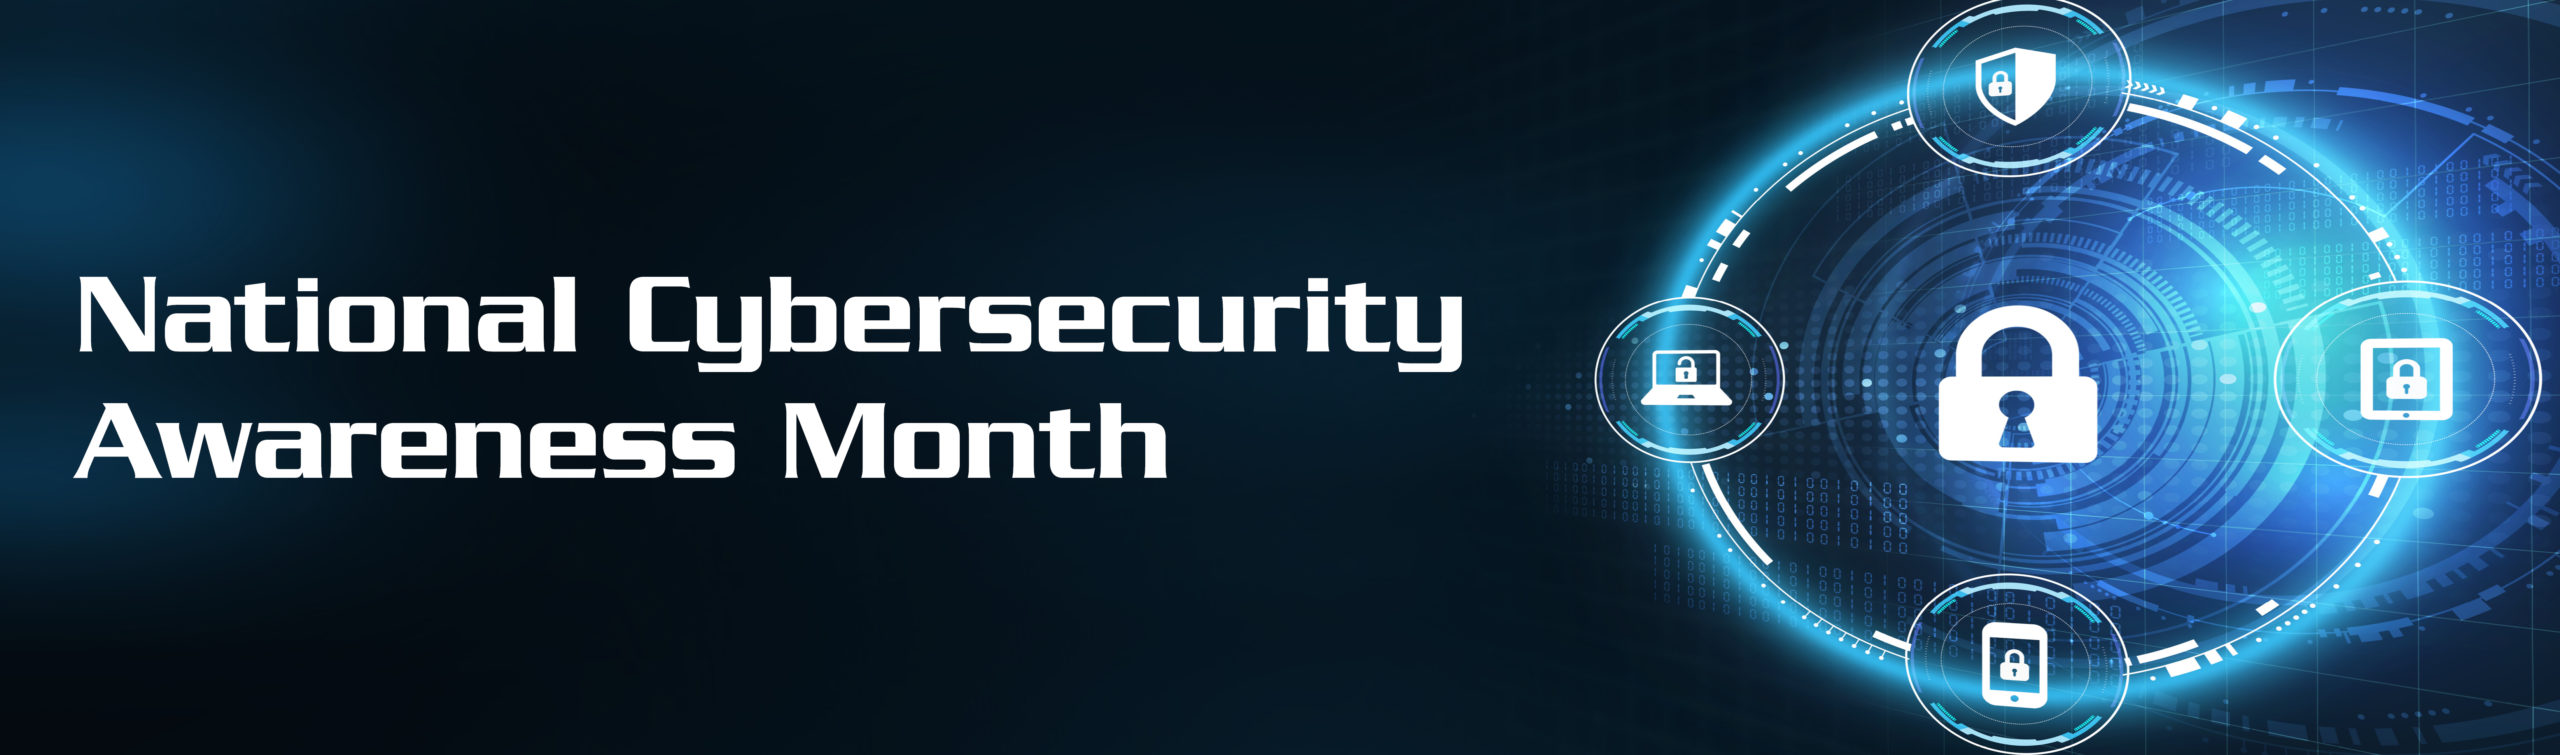 Cybersecurity Awareness Month01